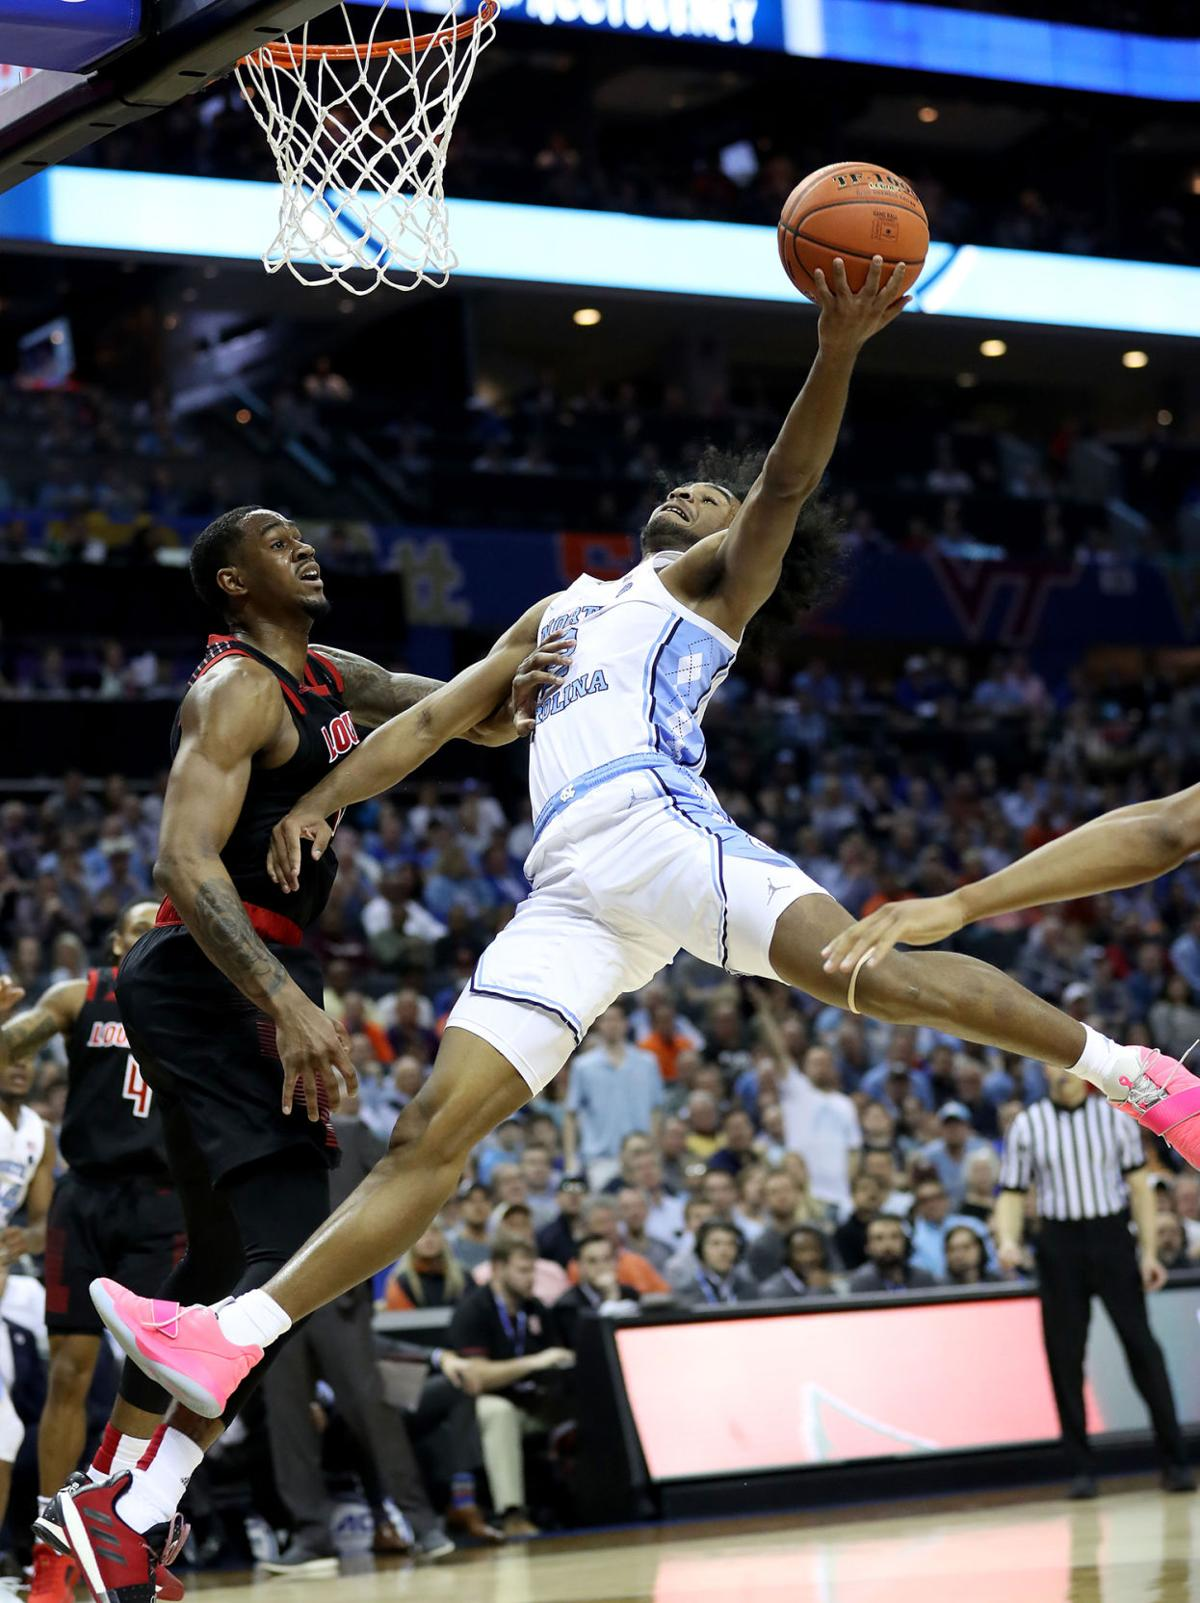 North Carolina's Coby White (2) drives to the basket against Louisville's V.J. King during the quarterfinal round of the ACC Tournament at Spectrum Center in Charlotte, N.C., on Thursday, March 14, 2019. The Tar Heels advanced, 83-70. **FOR USE WITH THIS STORY ONLY**